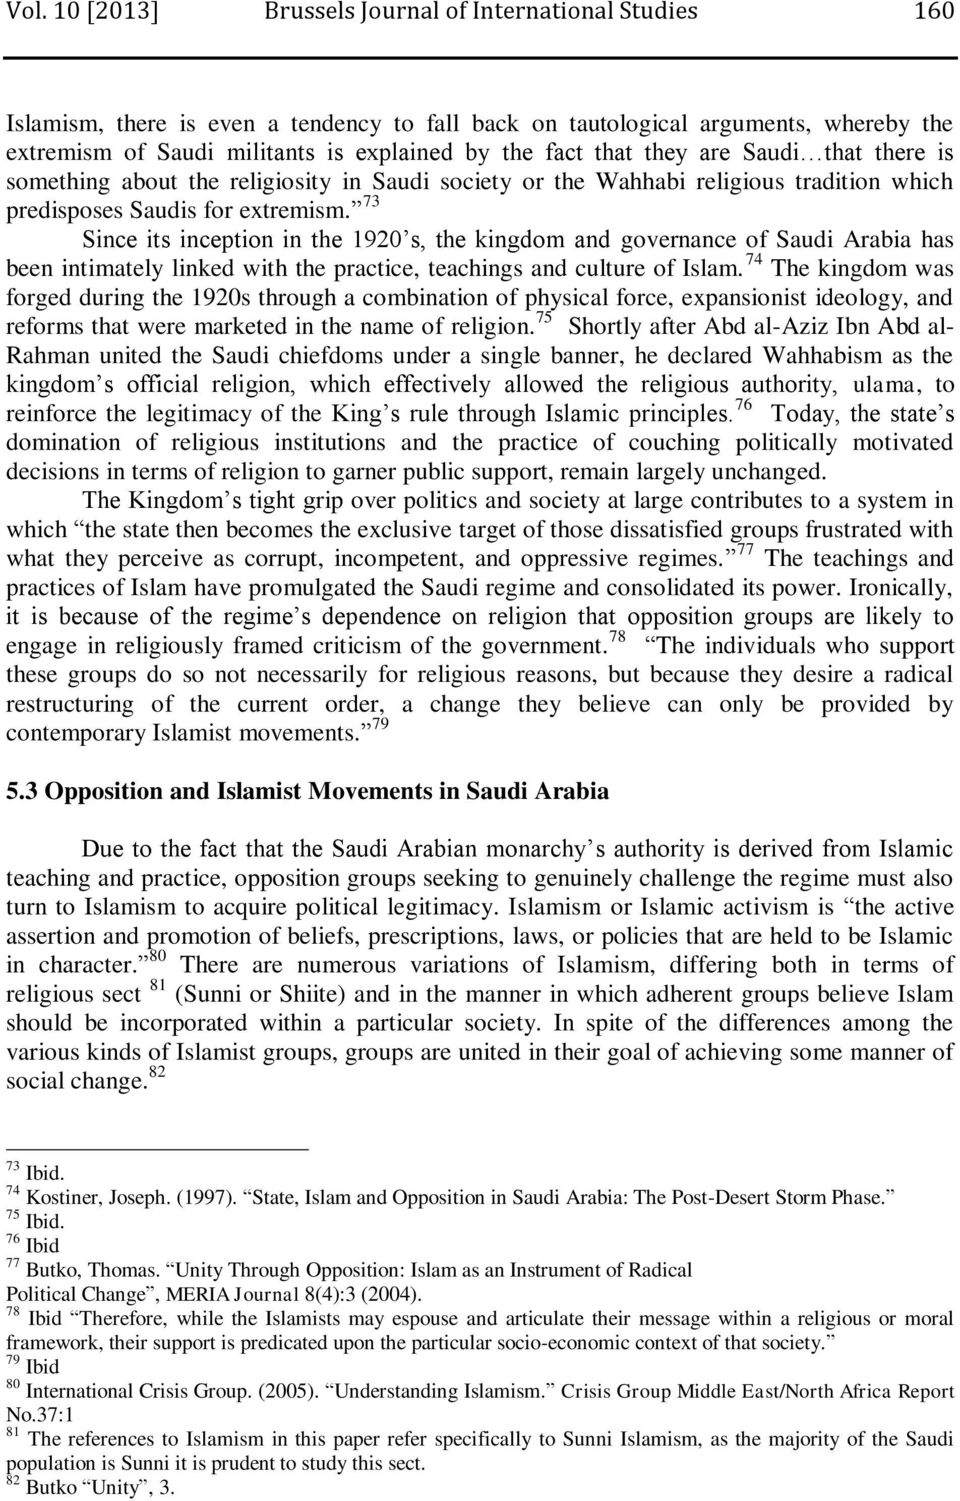 73 Since its inception in the 1920 s, the kingdom and governance of Saudi Arabia has been intimately linked with the practice, teachings and culture of Islam.